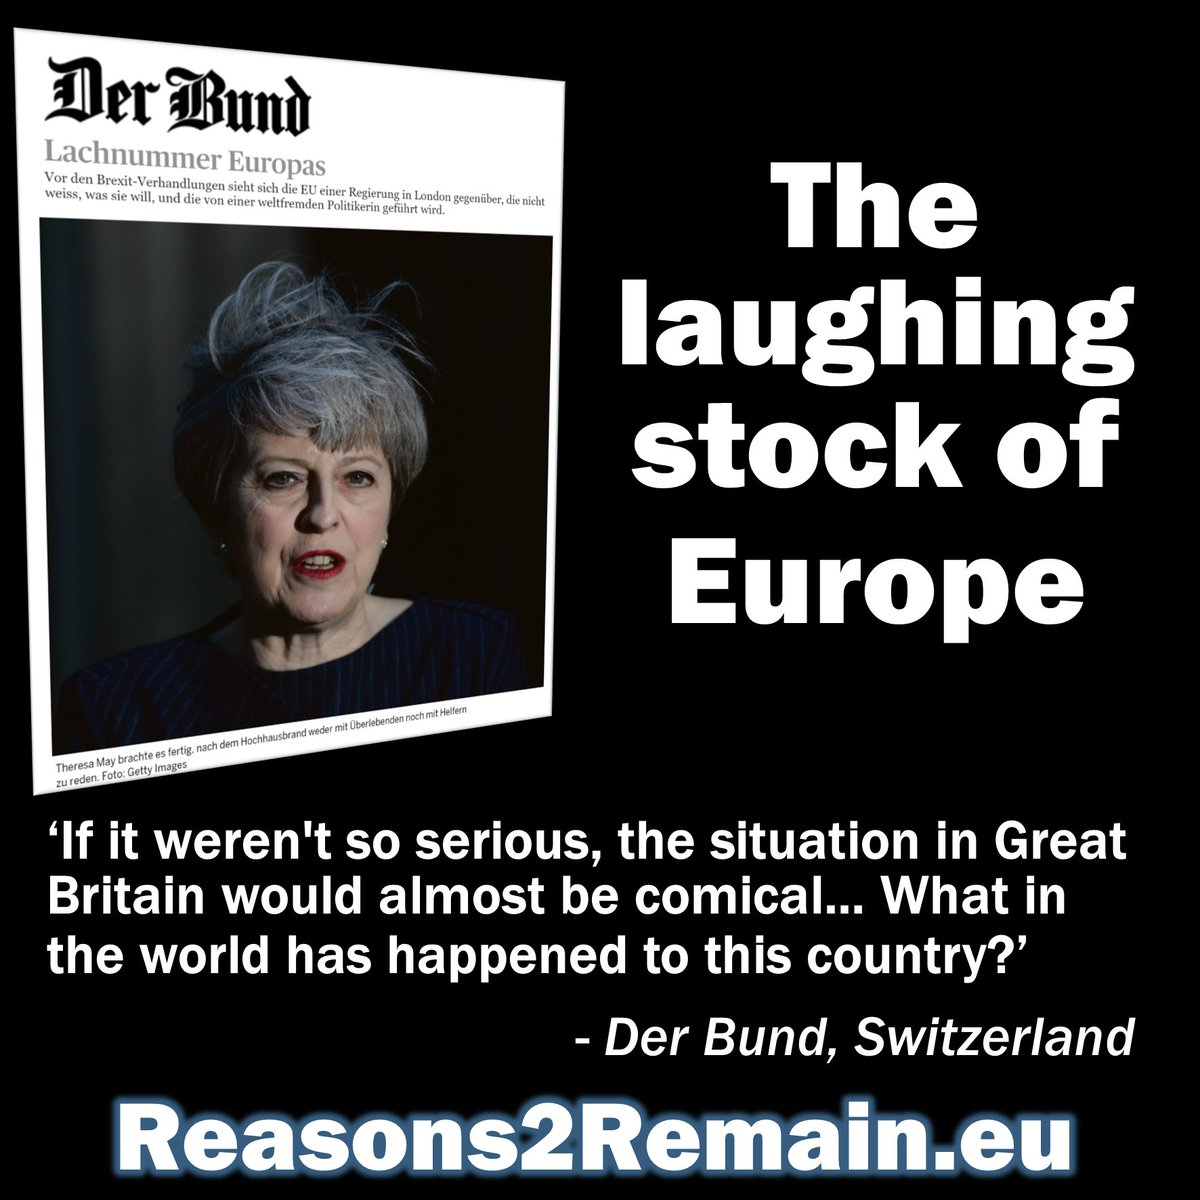 #Britain is now 'The laughing stock of #Europe' – read the translation of @derbund's damning appraisal of #Brexit:  http:// goo.gl/19bxcy  &nbsp;  <br>http://pic.twitter.com/ZzFY9zAYq5